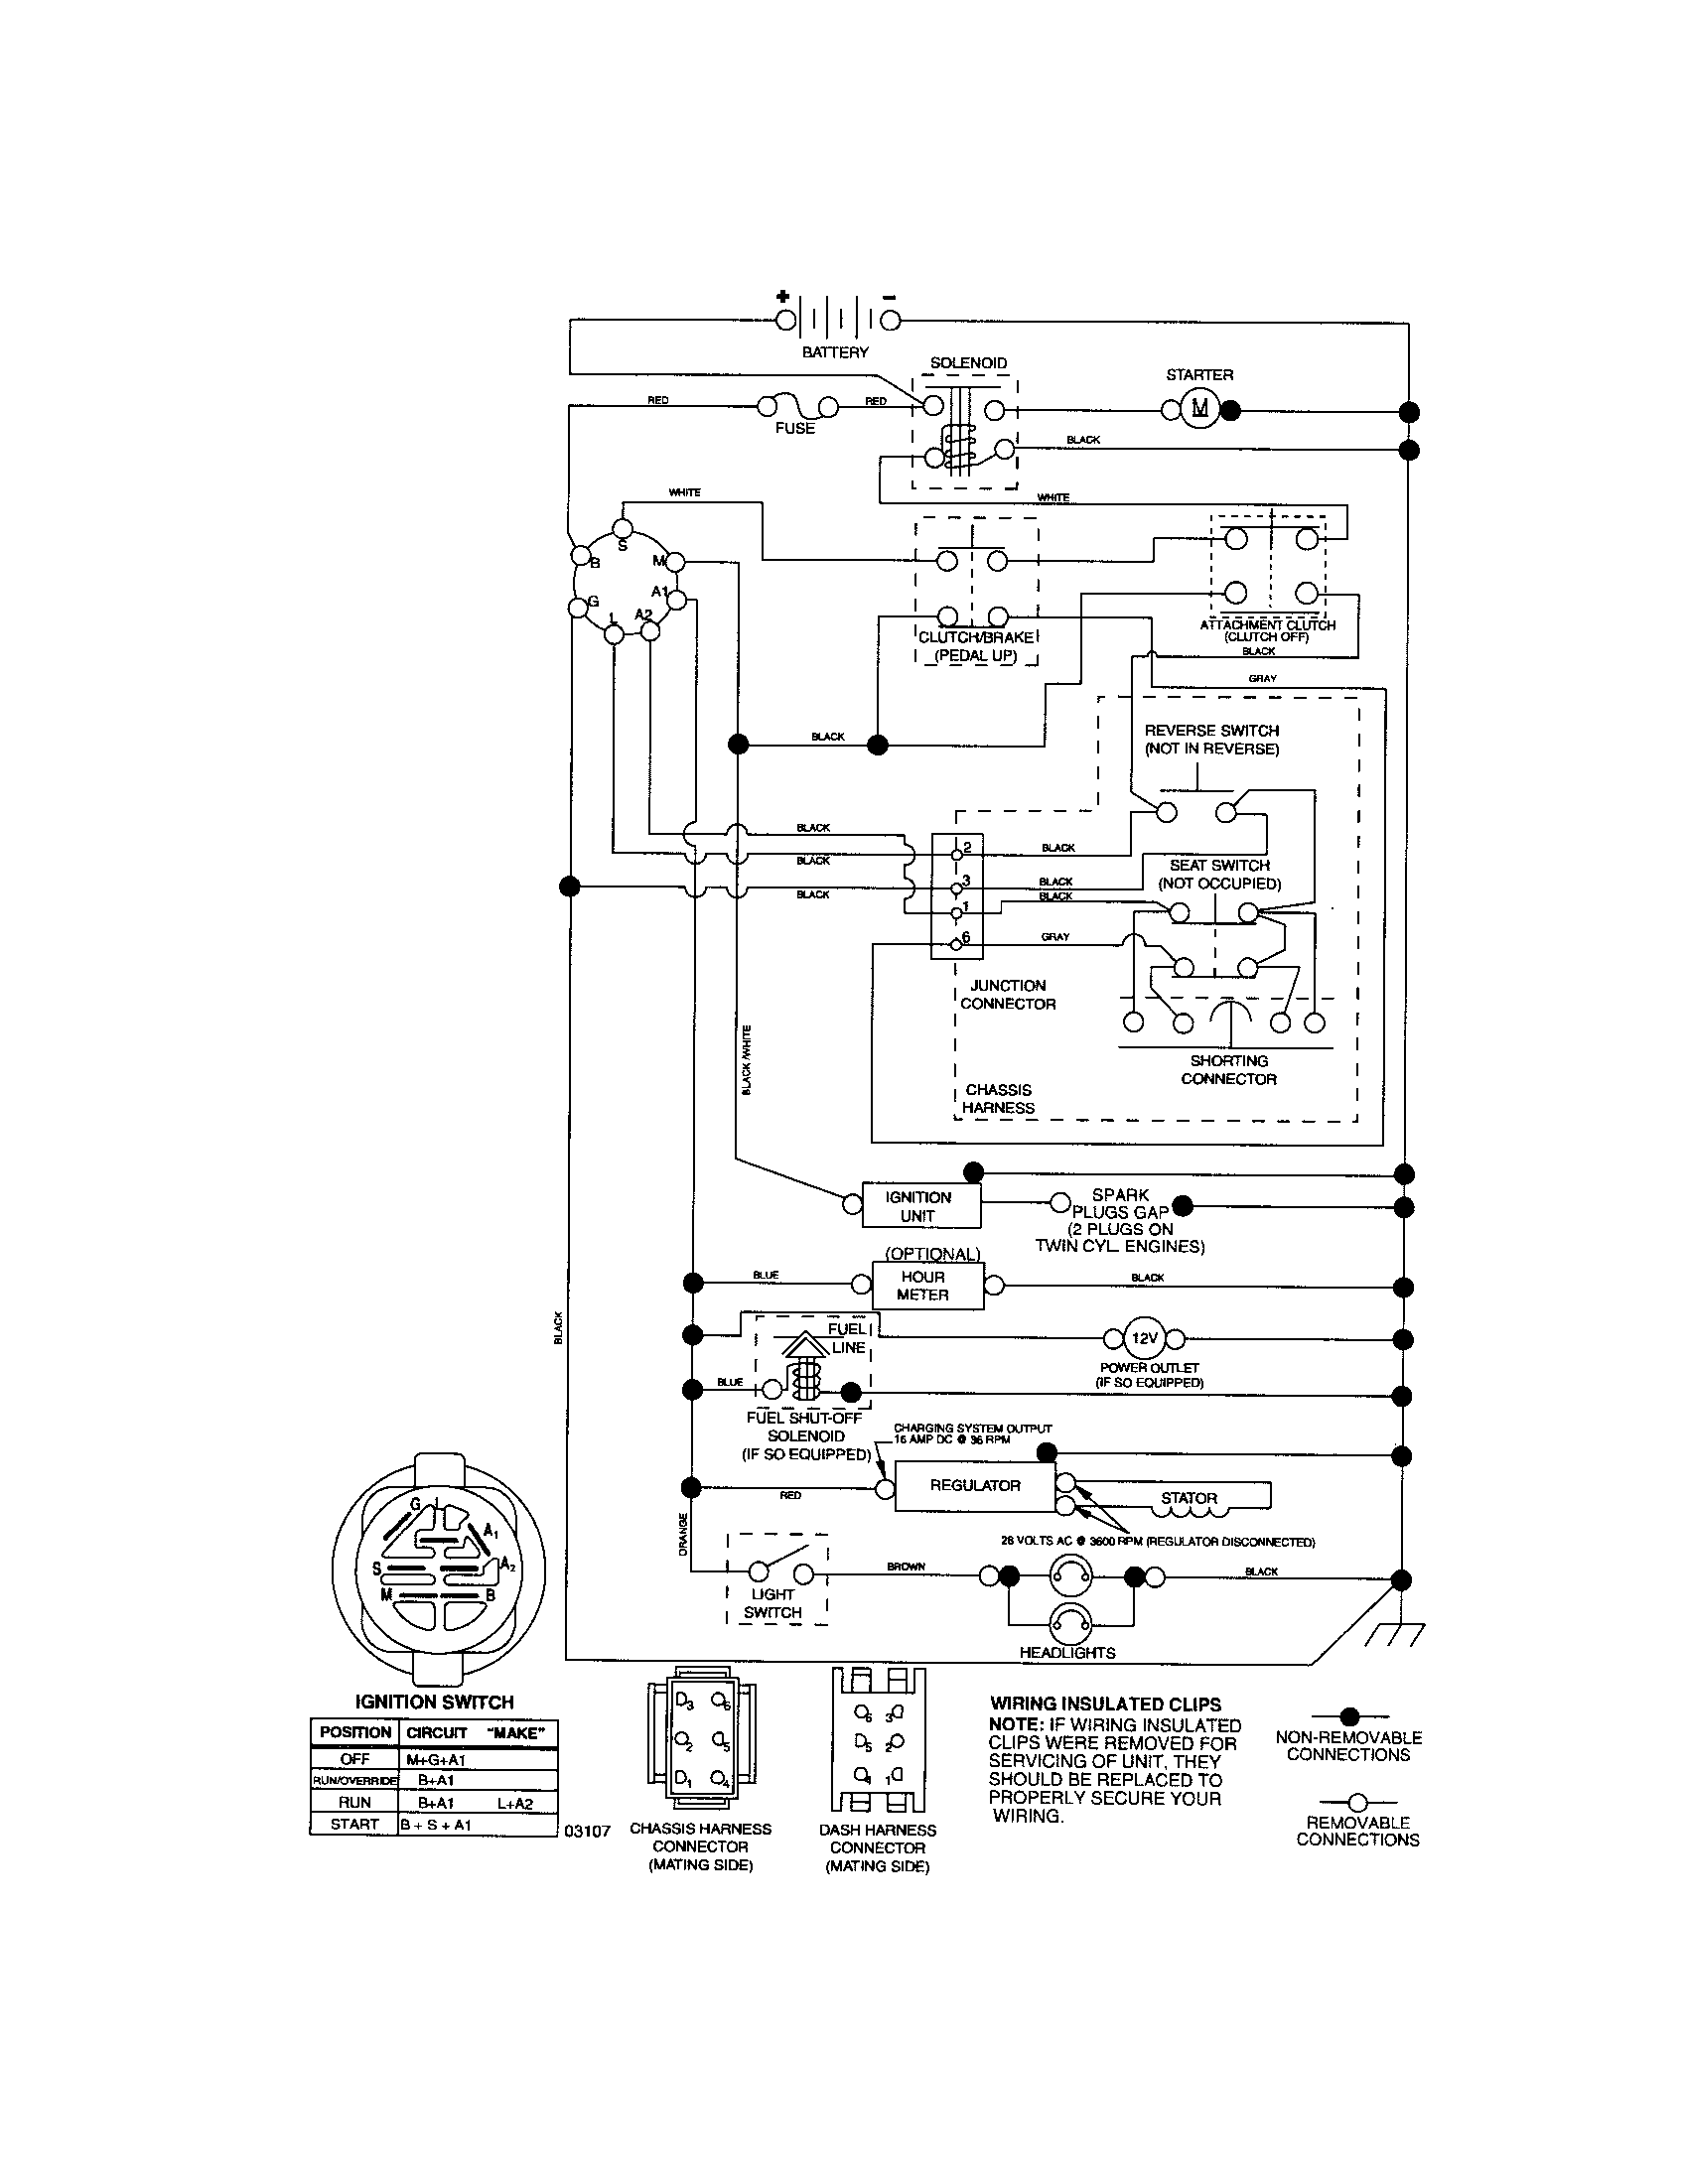 6af5f1447fd13c8443376822ddc1e105 craftsman riding mower electrical diagram wiring diagram briggs and stratton ignition coil wiring diagram at reclaimingppi.co